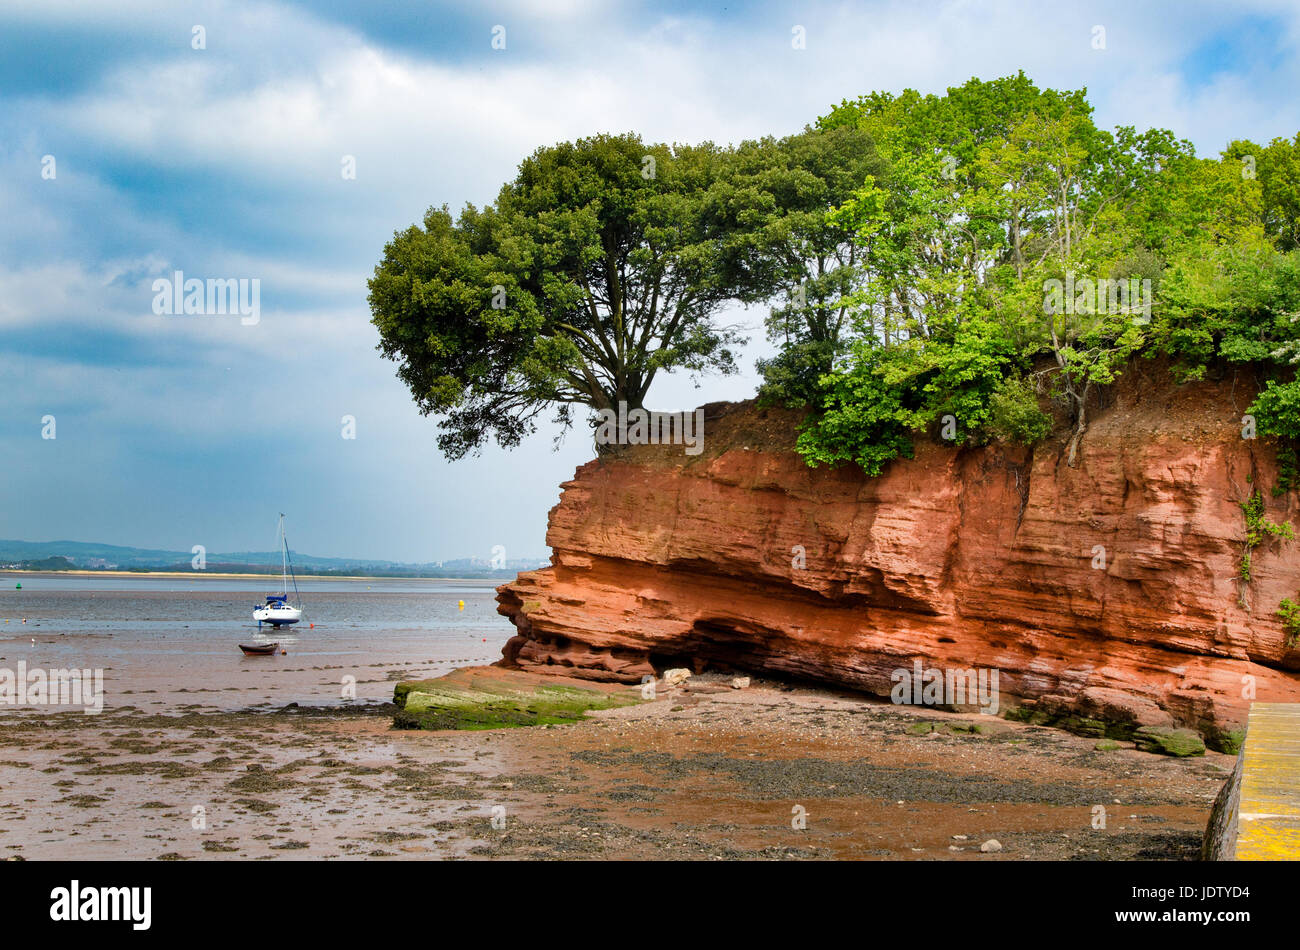 Darling's Rock, Lympstone, Devon. With the River Exe Estuary beyond. - Stock Image